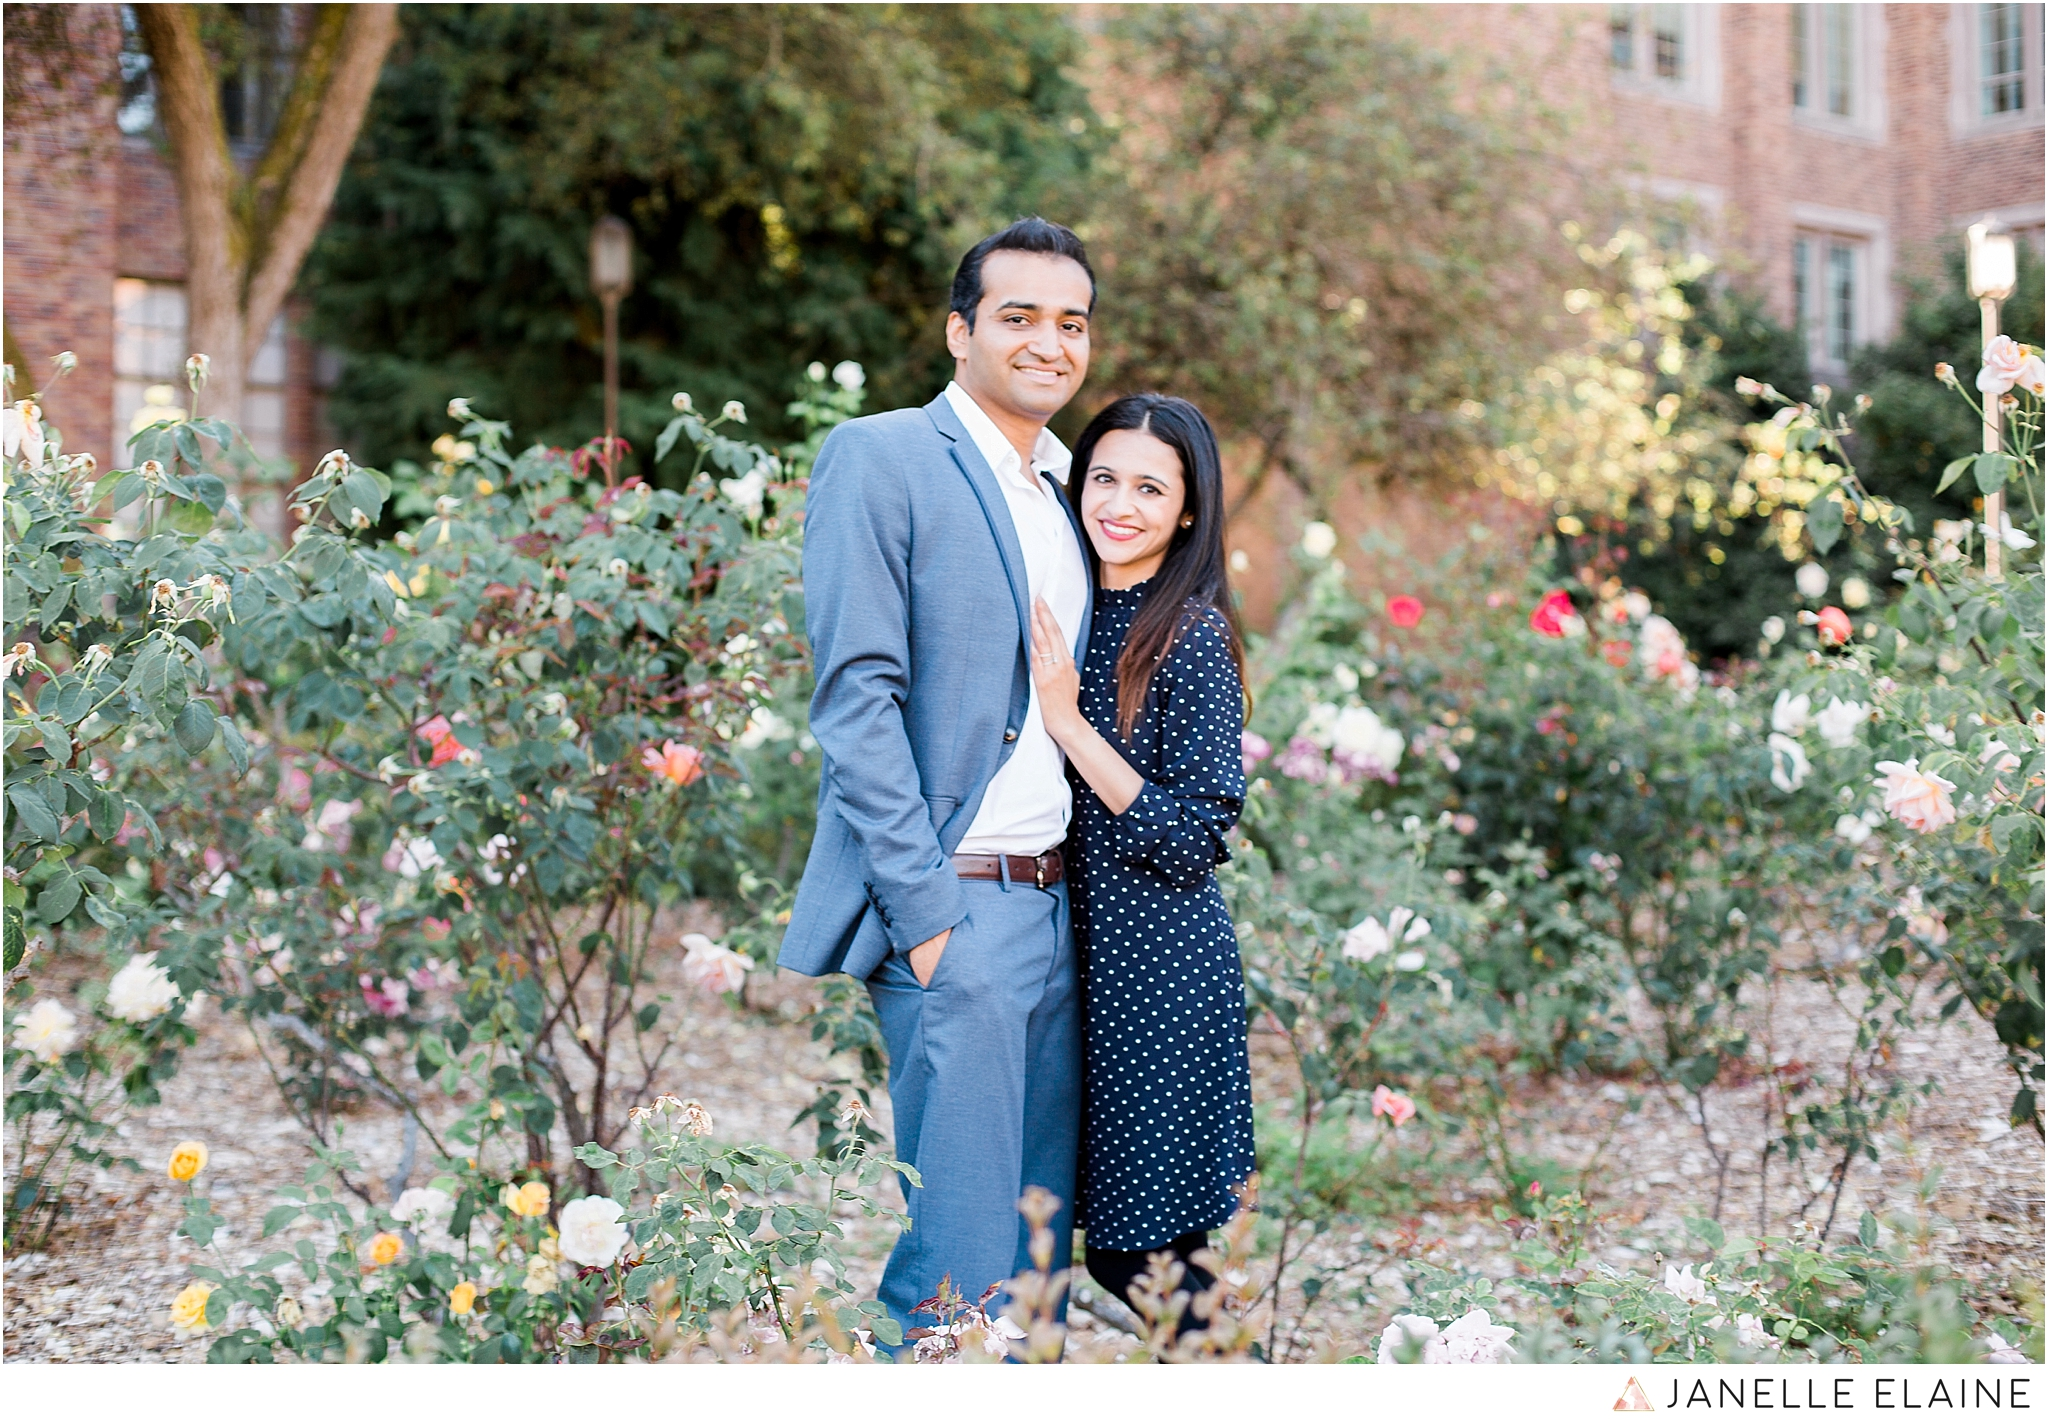 janelle elaine photography-zain and umema-seattle-uw-red square-engagement-photographer-135.jpg